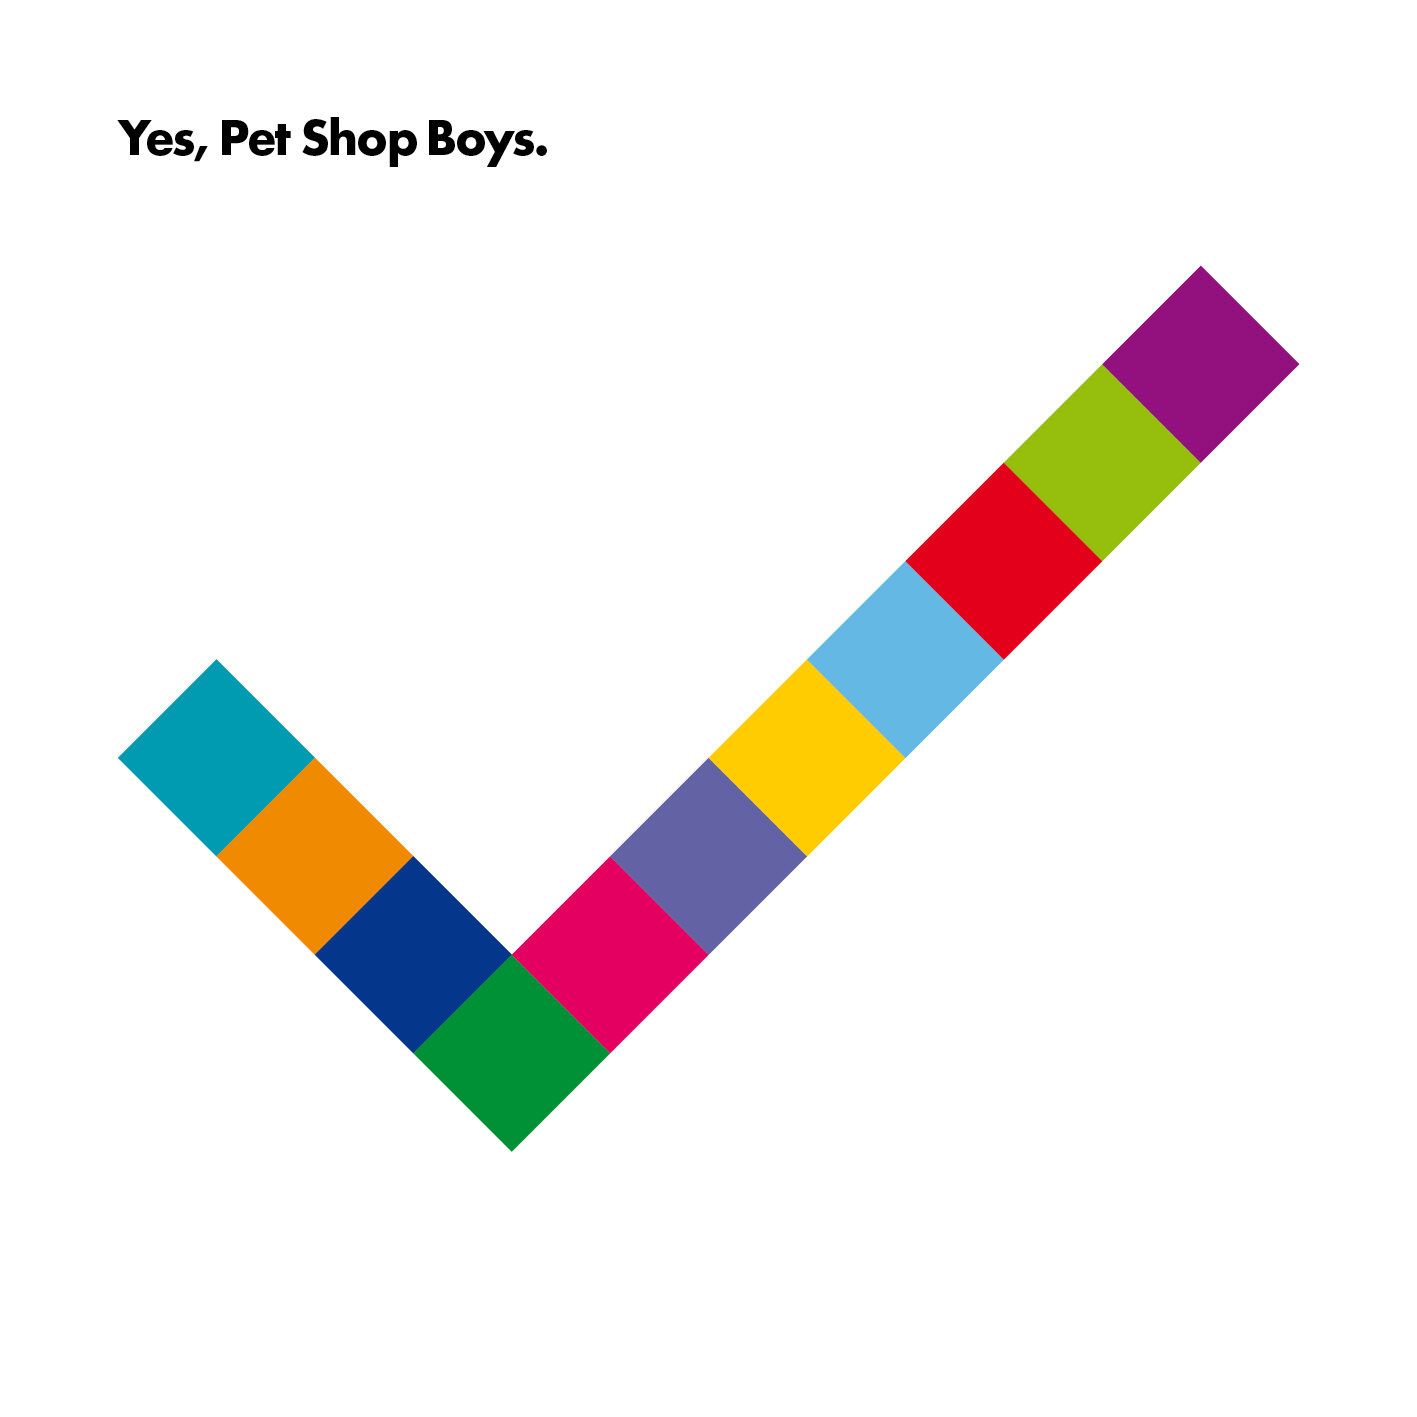 2009 – Yes